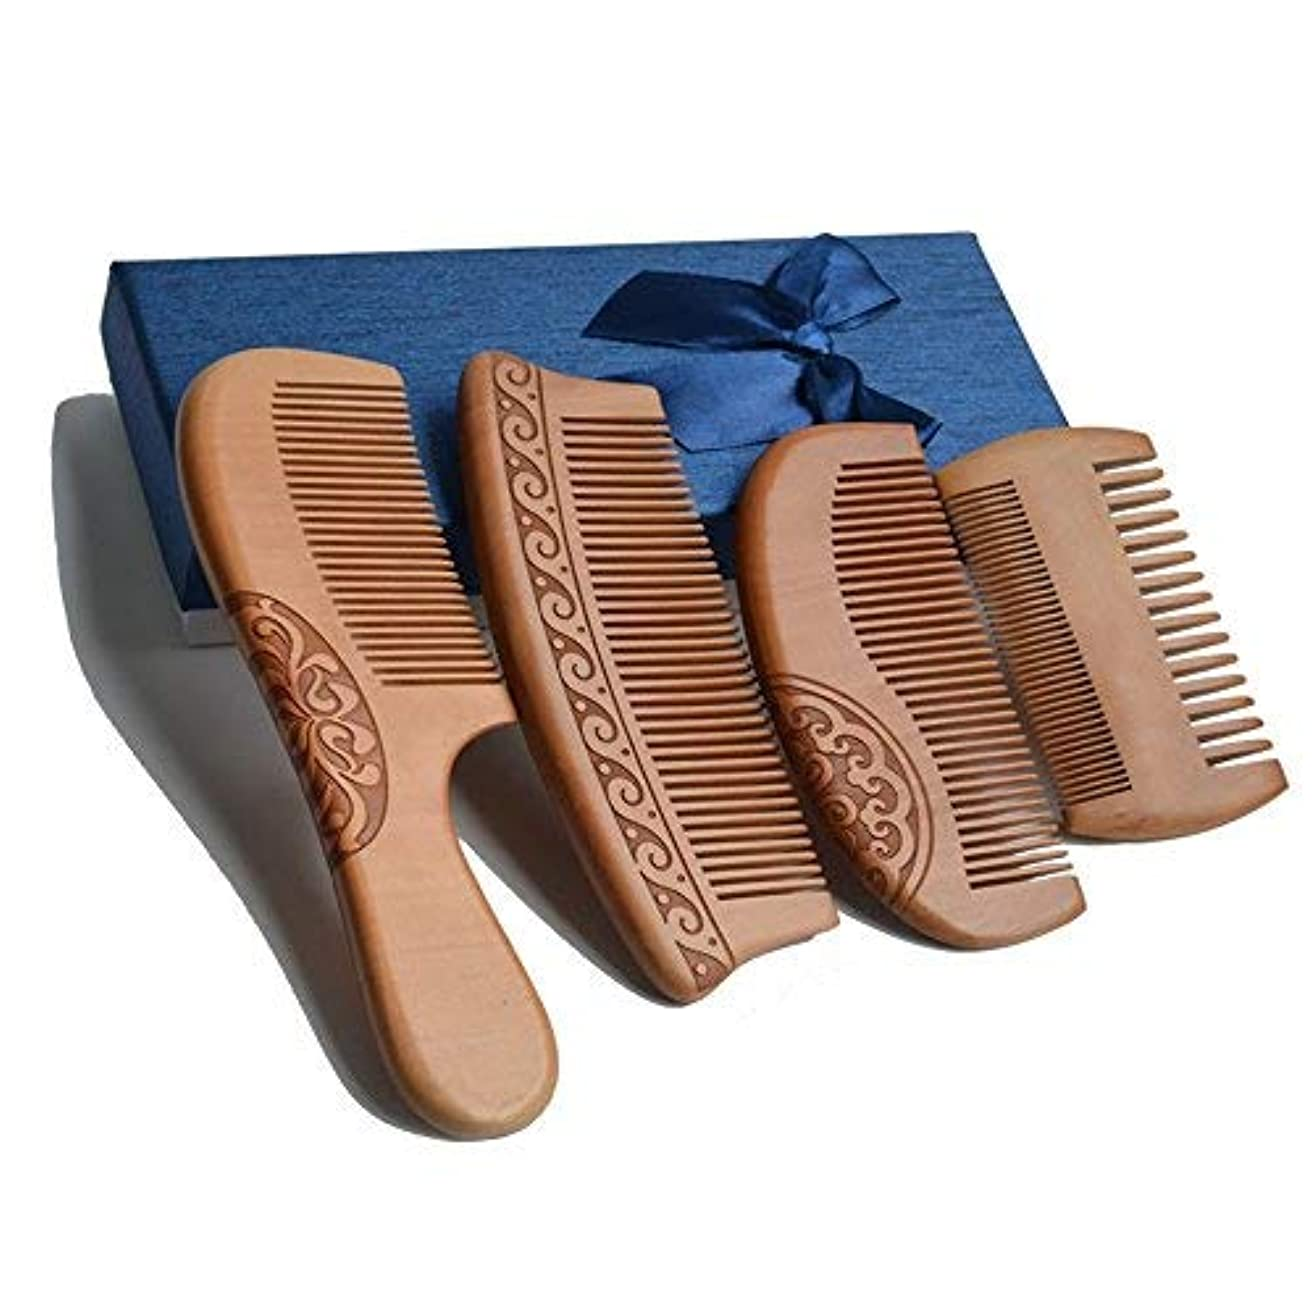 4Pcs Wooden Hair Comb No Static Hair Detangler Detangling Comb with Premium Gift Box [並行輸入品]